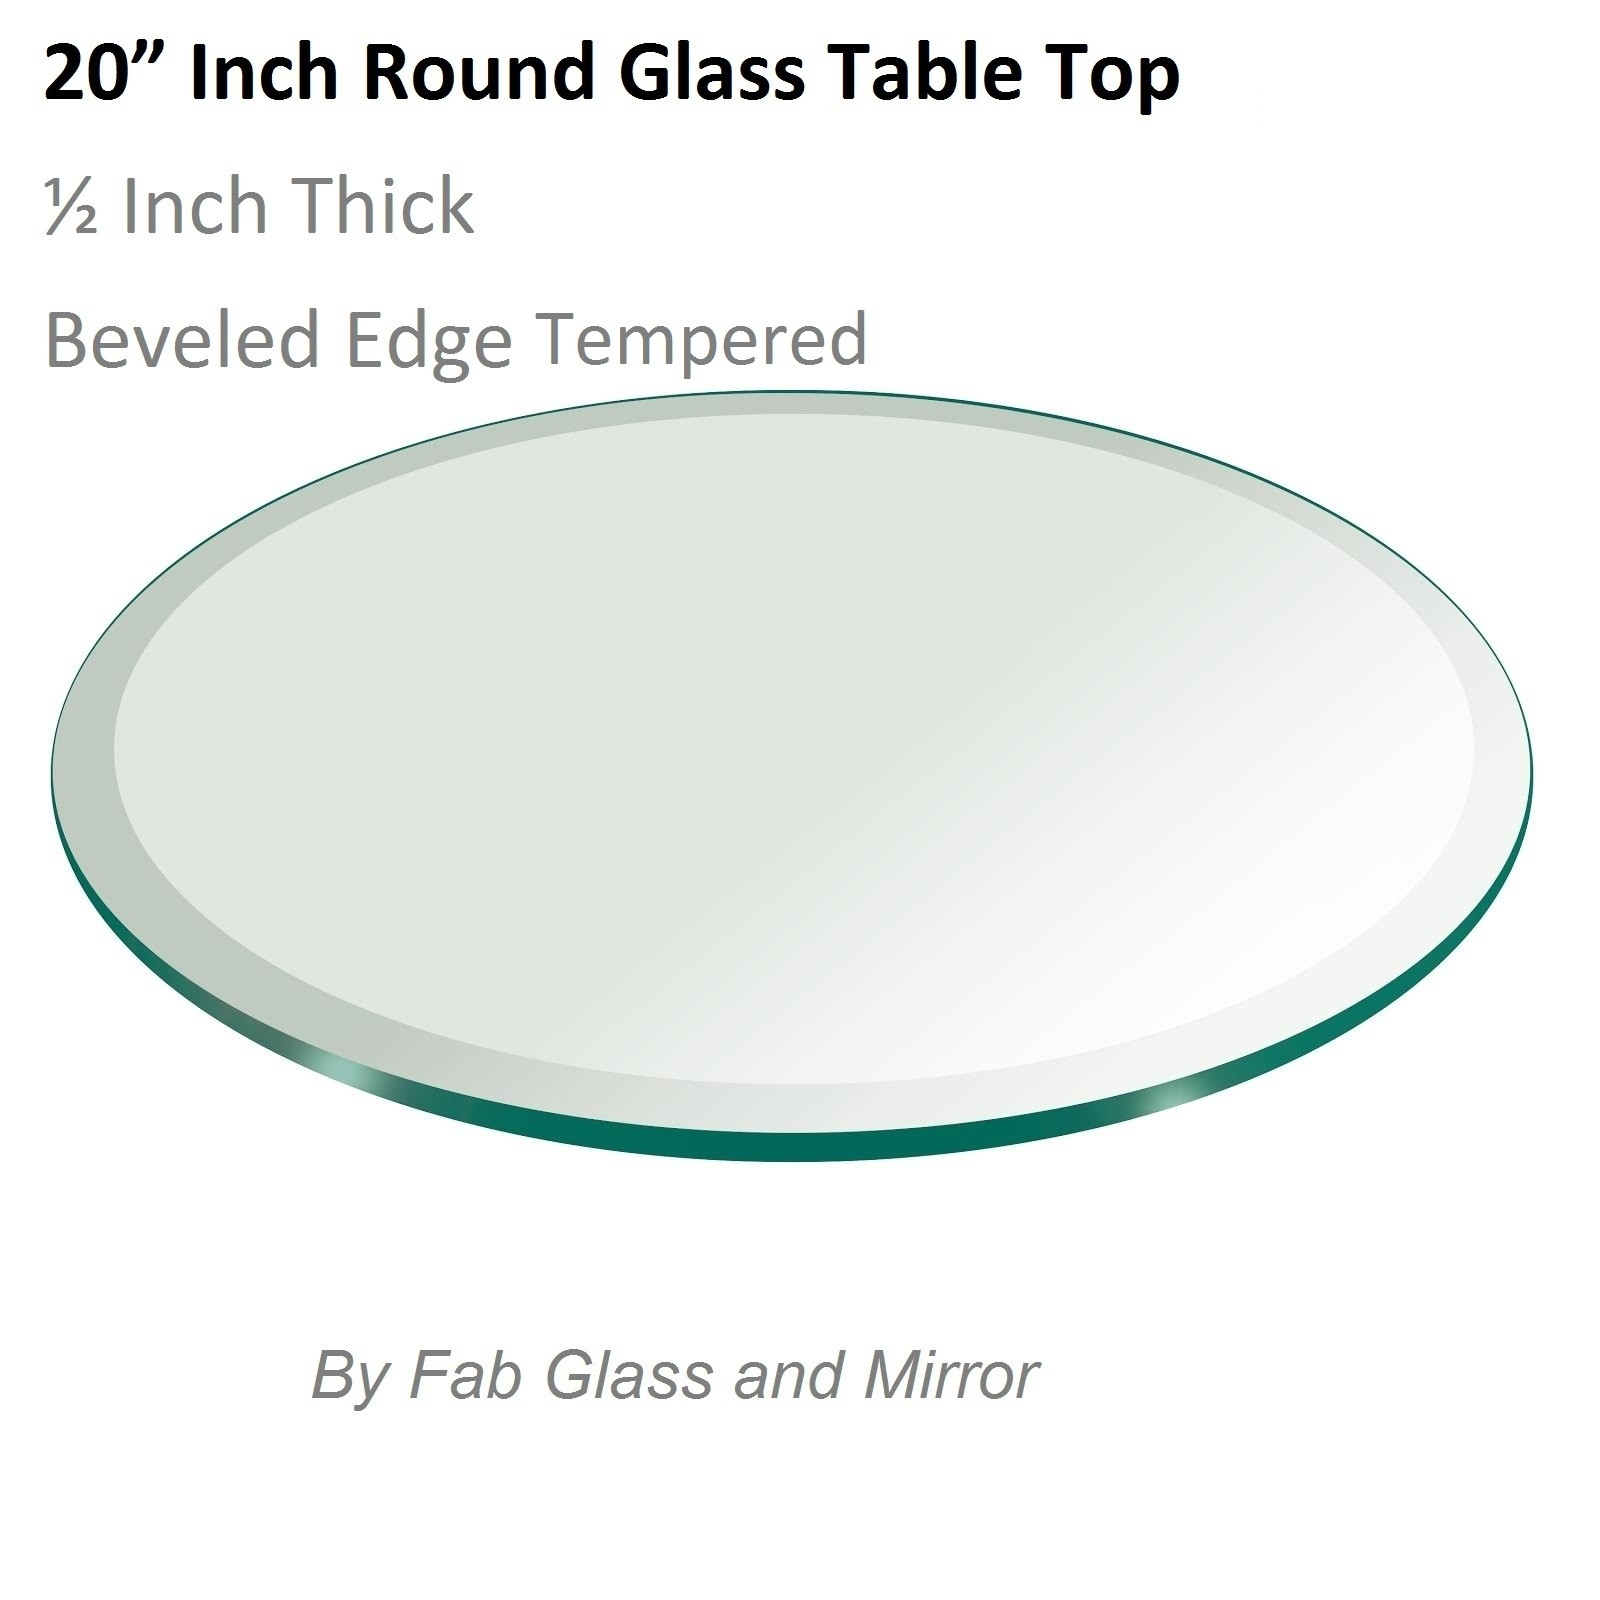 Glass Table Top 20 Inch Round Beveled Edge Tempered Glass Pertaining To Chamfered Edge Mirror (Image 9 of 15)